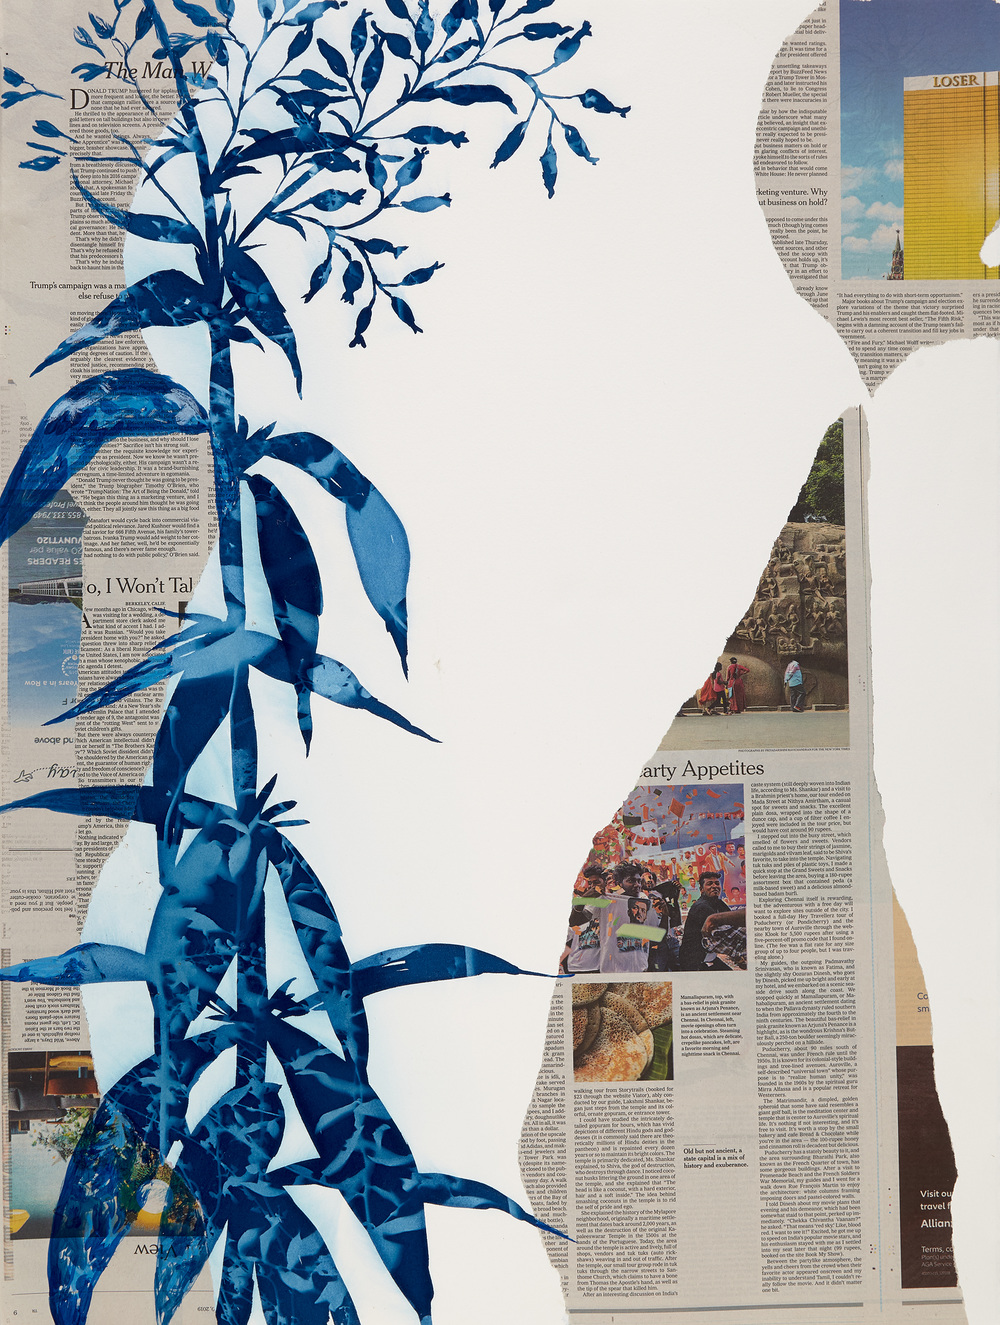 Cynthia MacCollum Ephemera Cyanotype, acrylic paint and New York Times on BFK